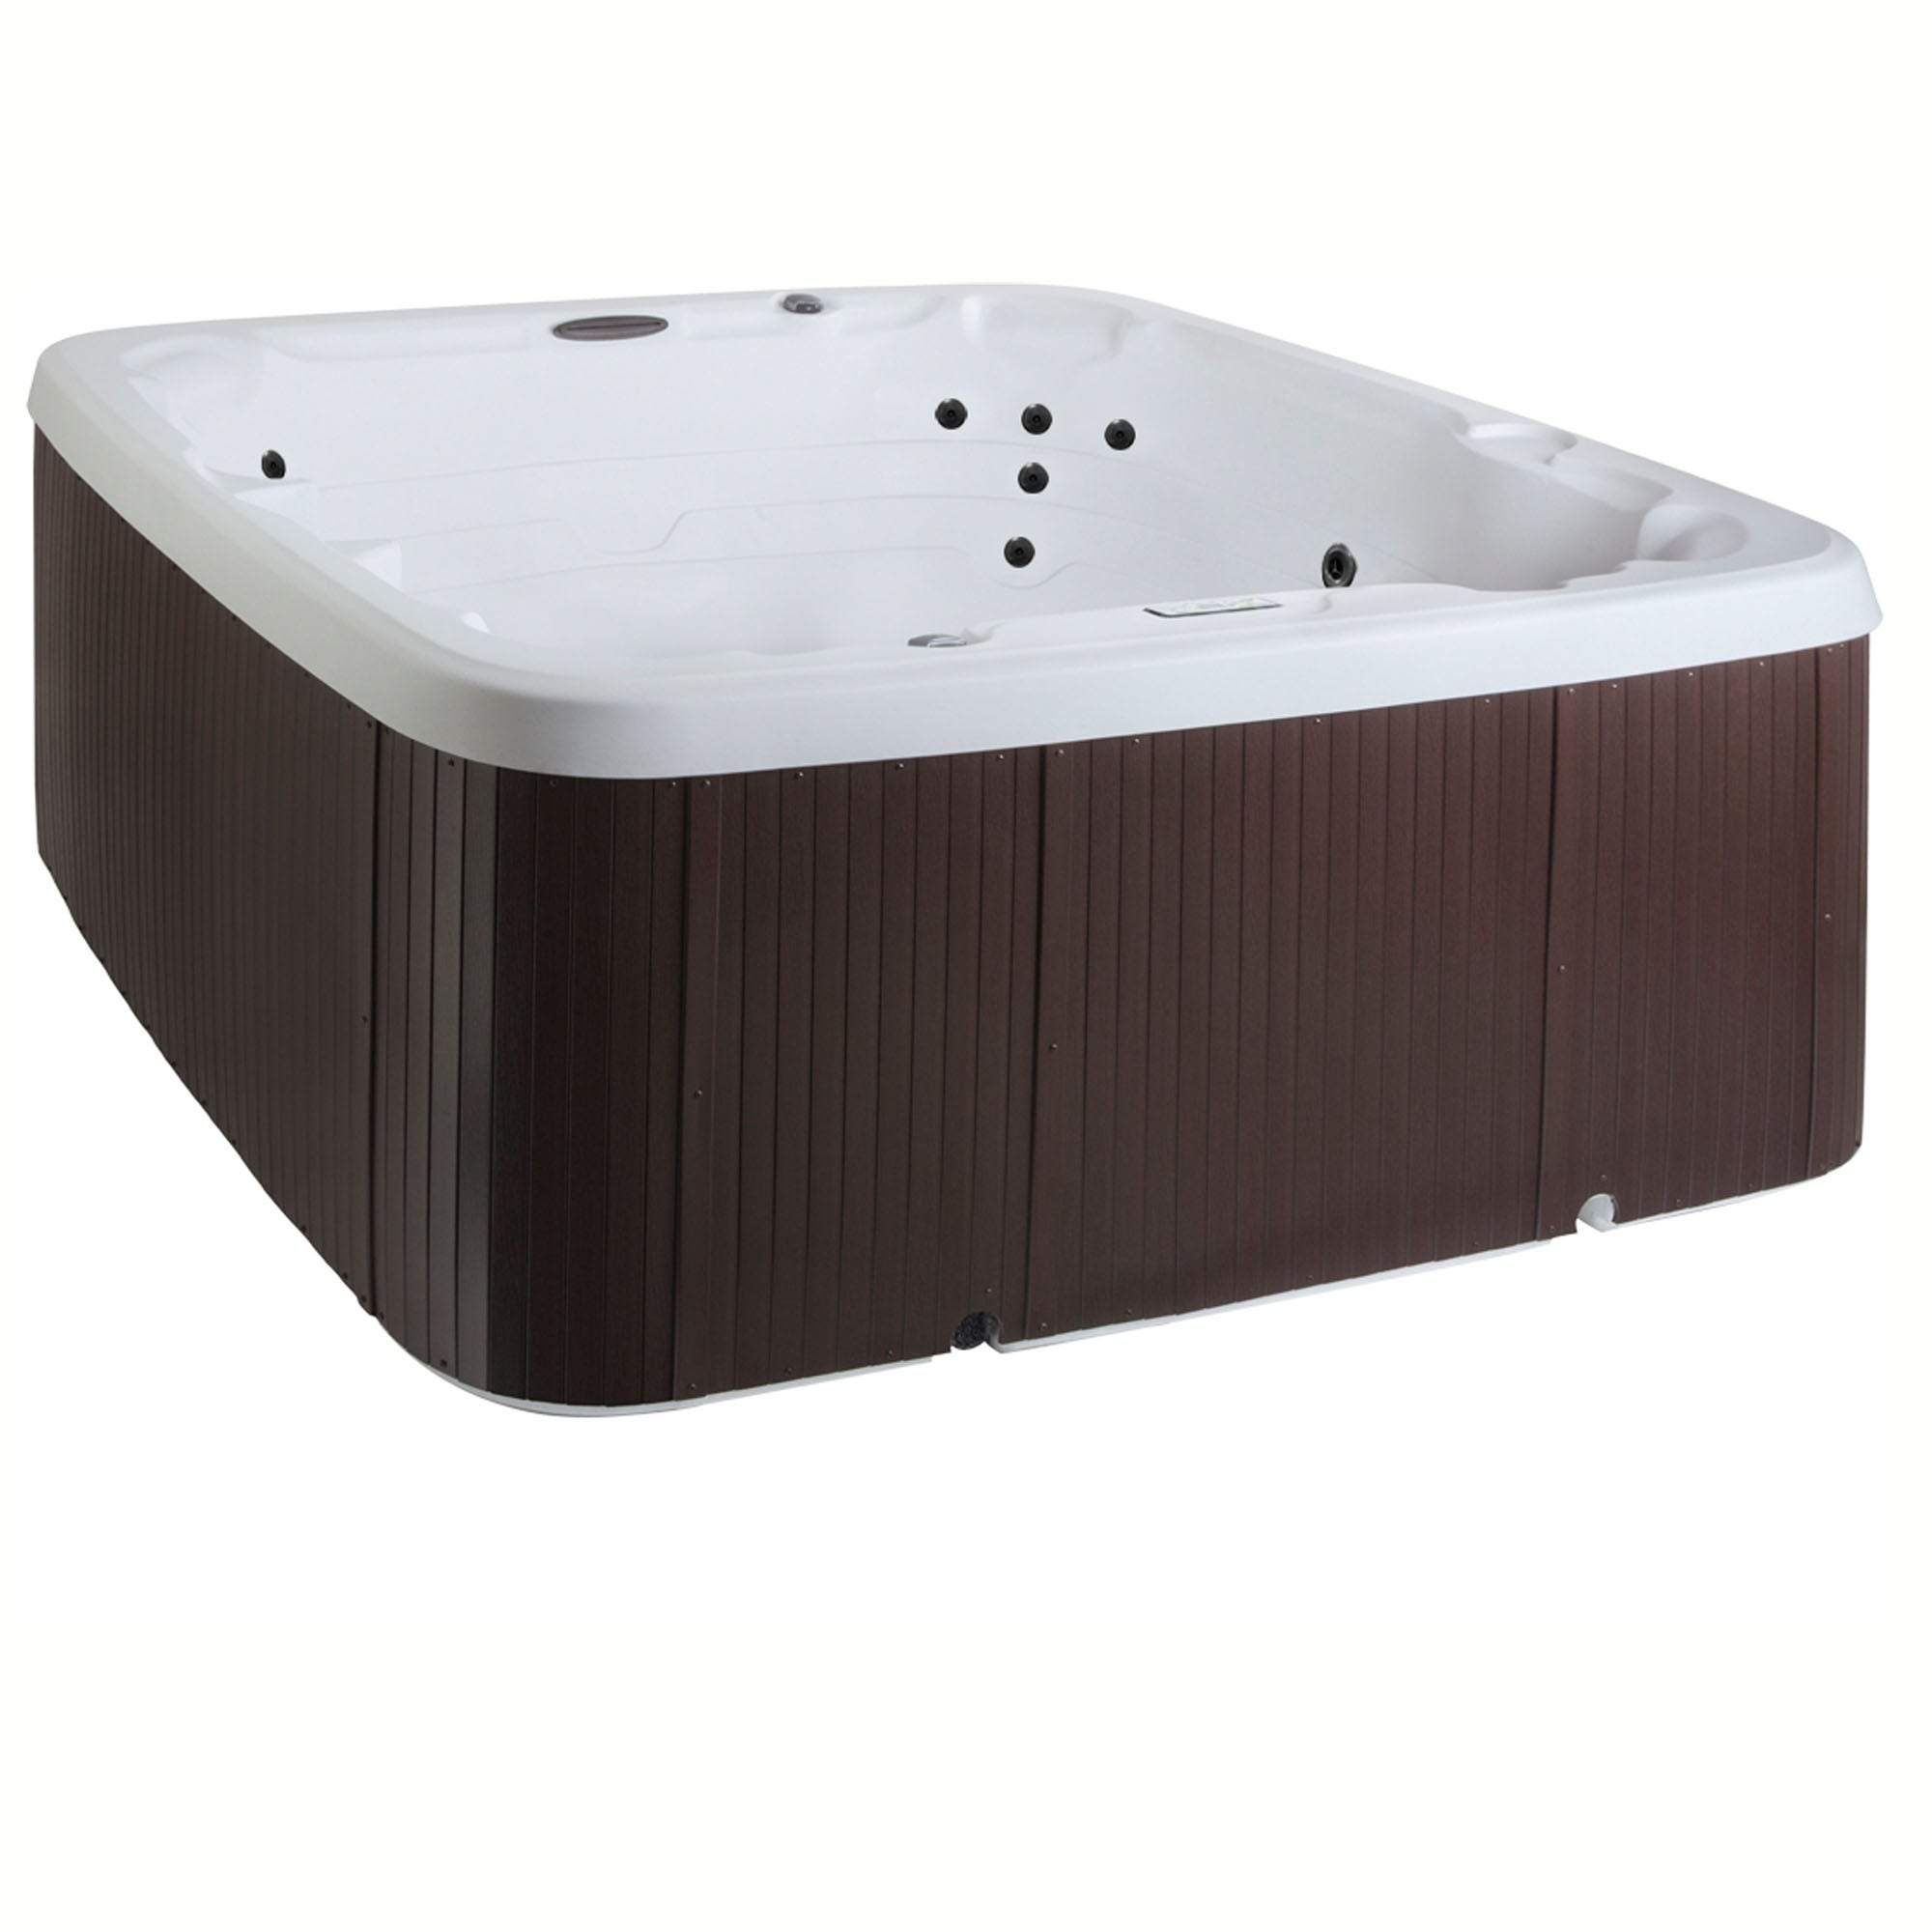 Lifesmart LS450DX 6-Person 22-Jet Plug & Play Spa